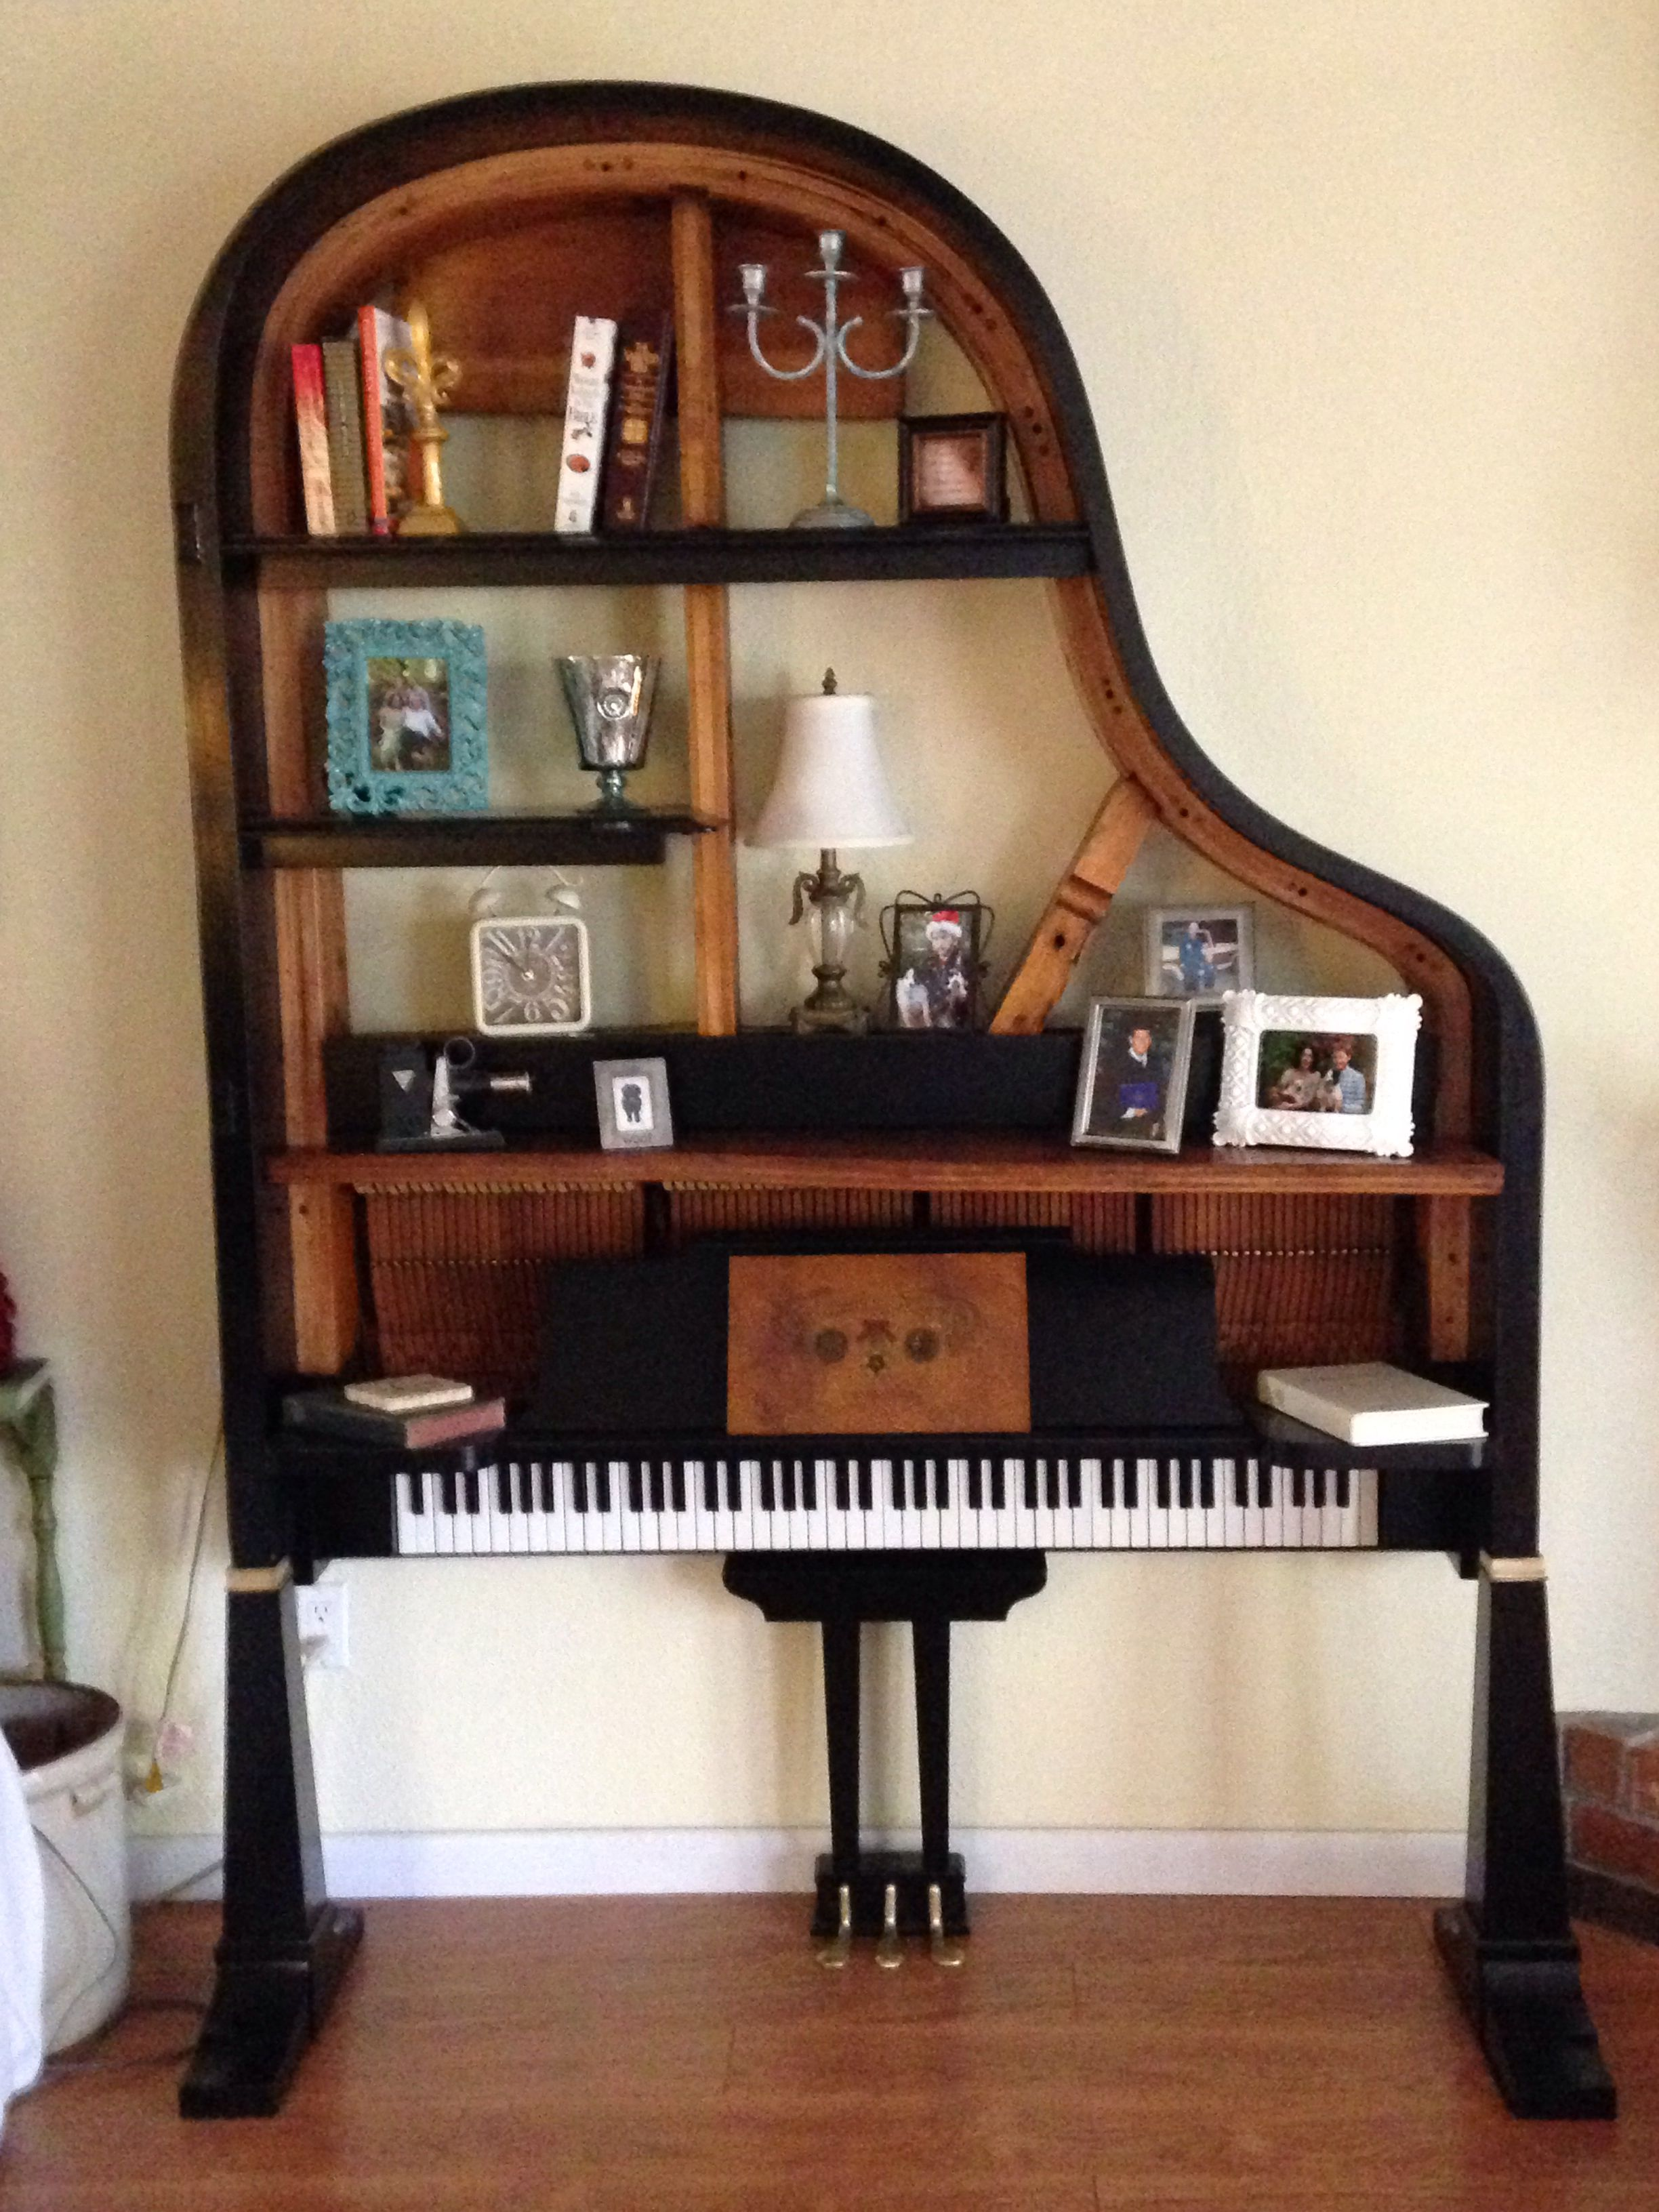 15 steps to being an AMAZING pianist | Pinterest | Pianos de cola ...